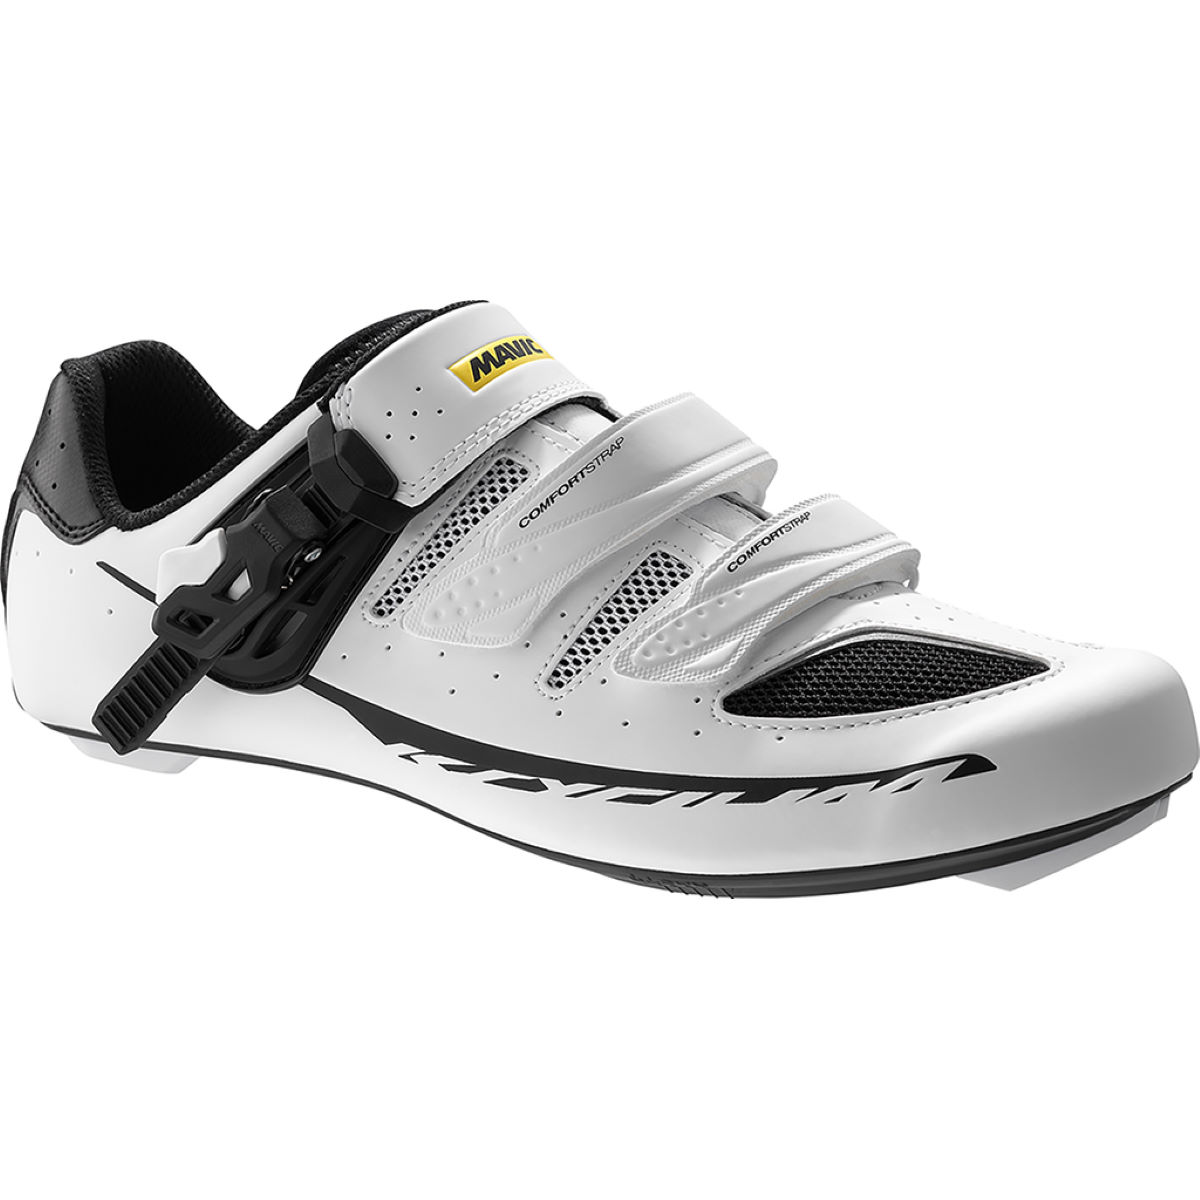 Chaussures Mavic Ksyrium Elite Maxi Fit II - 8 UK Blanc Chaussures de route